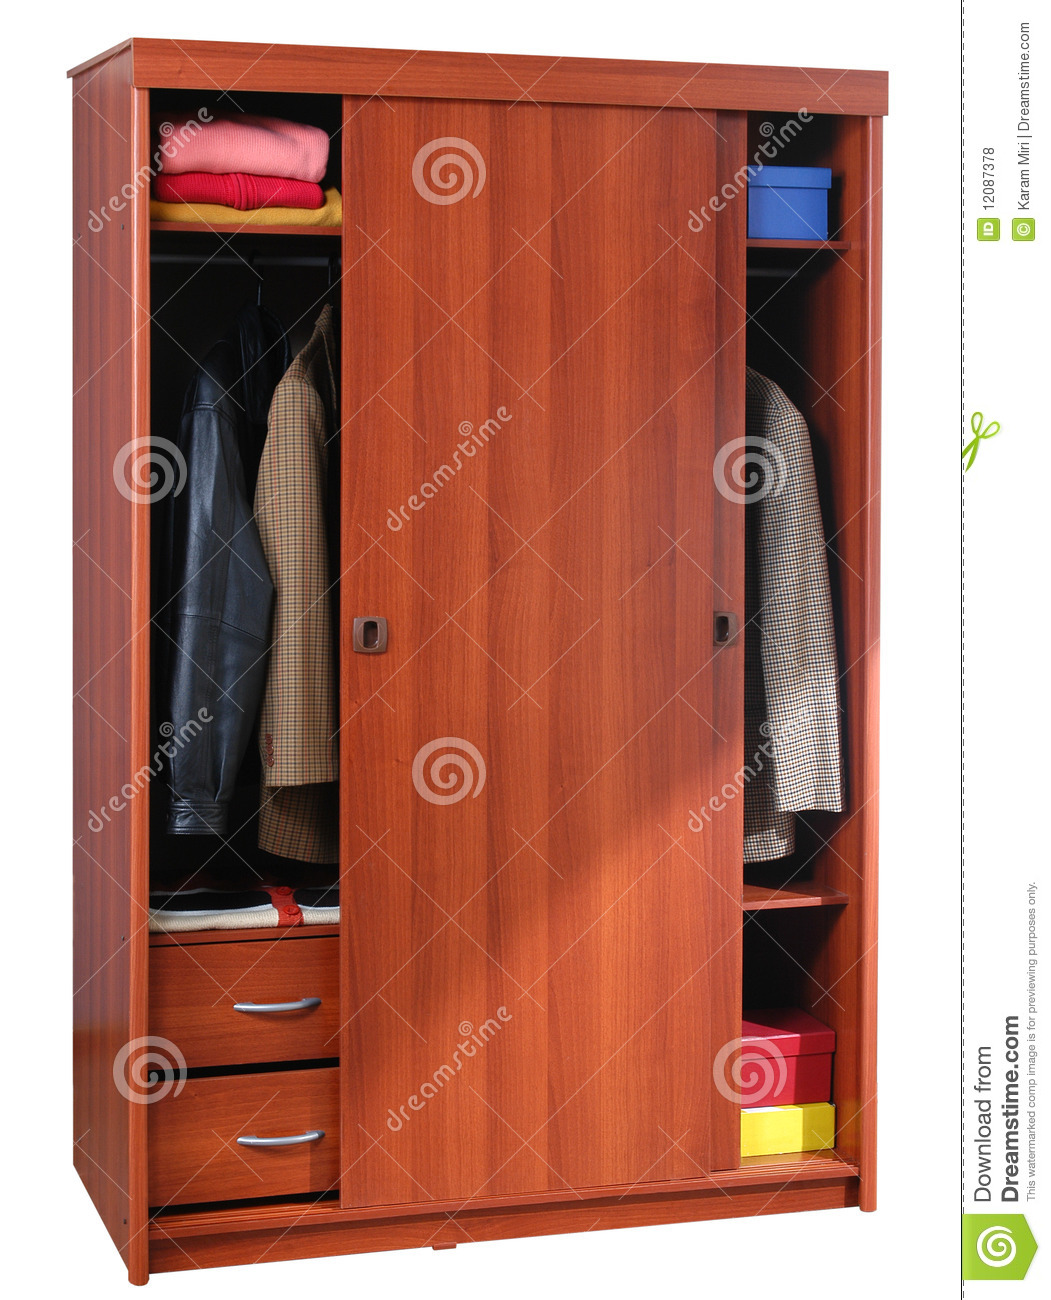 Clothing cabinet Isolated stock photo Image of hard